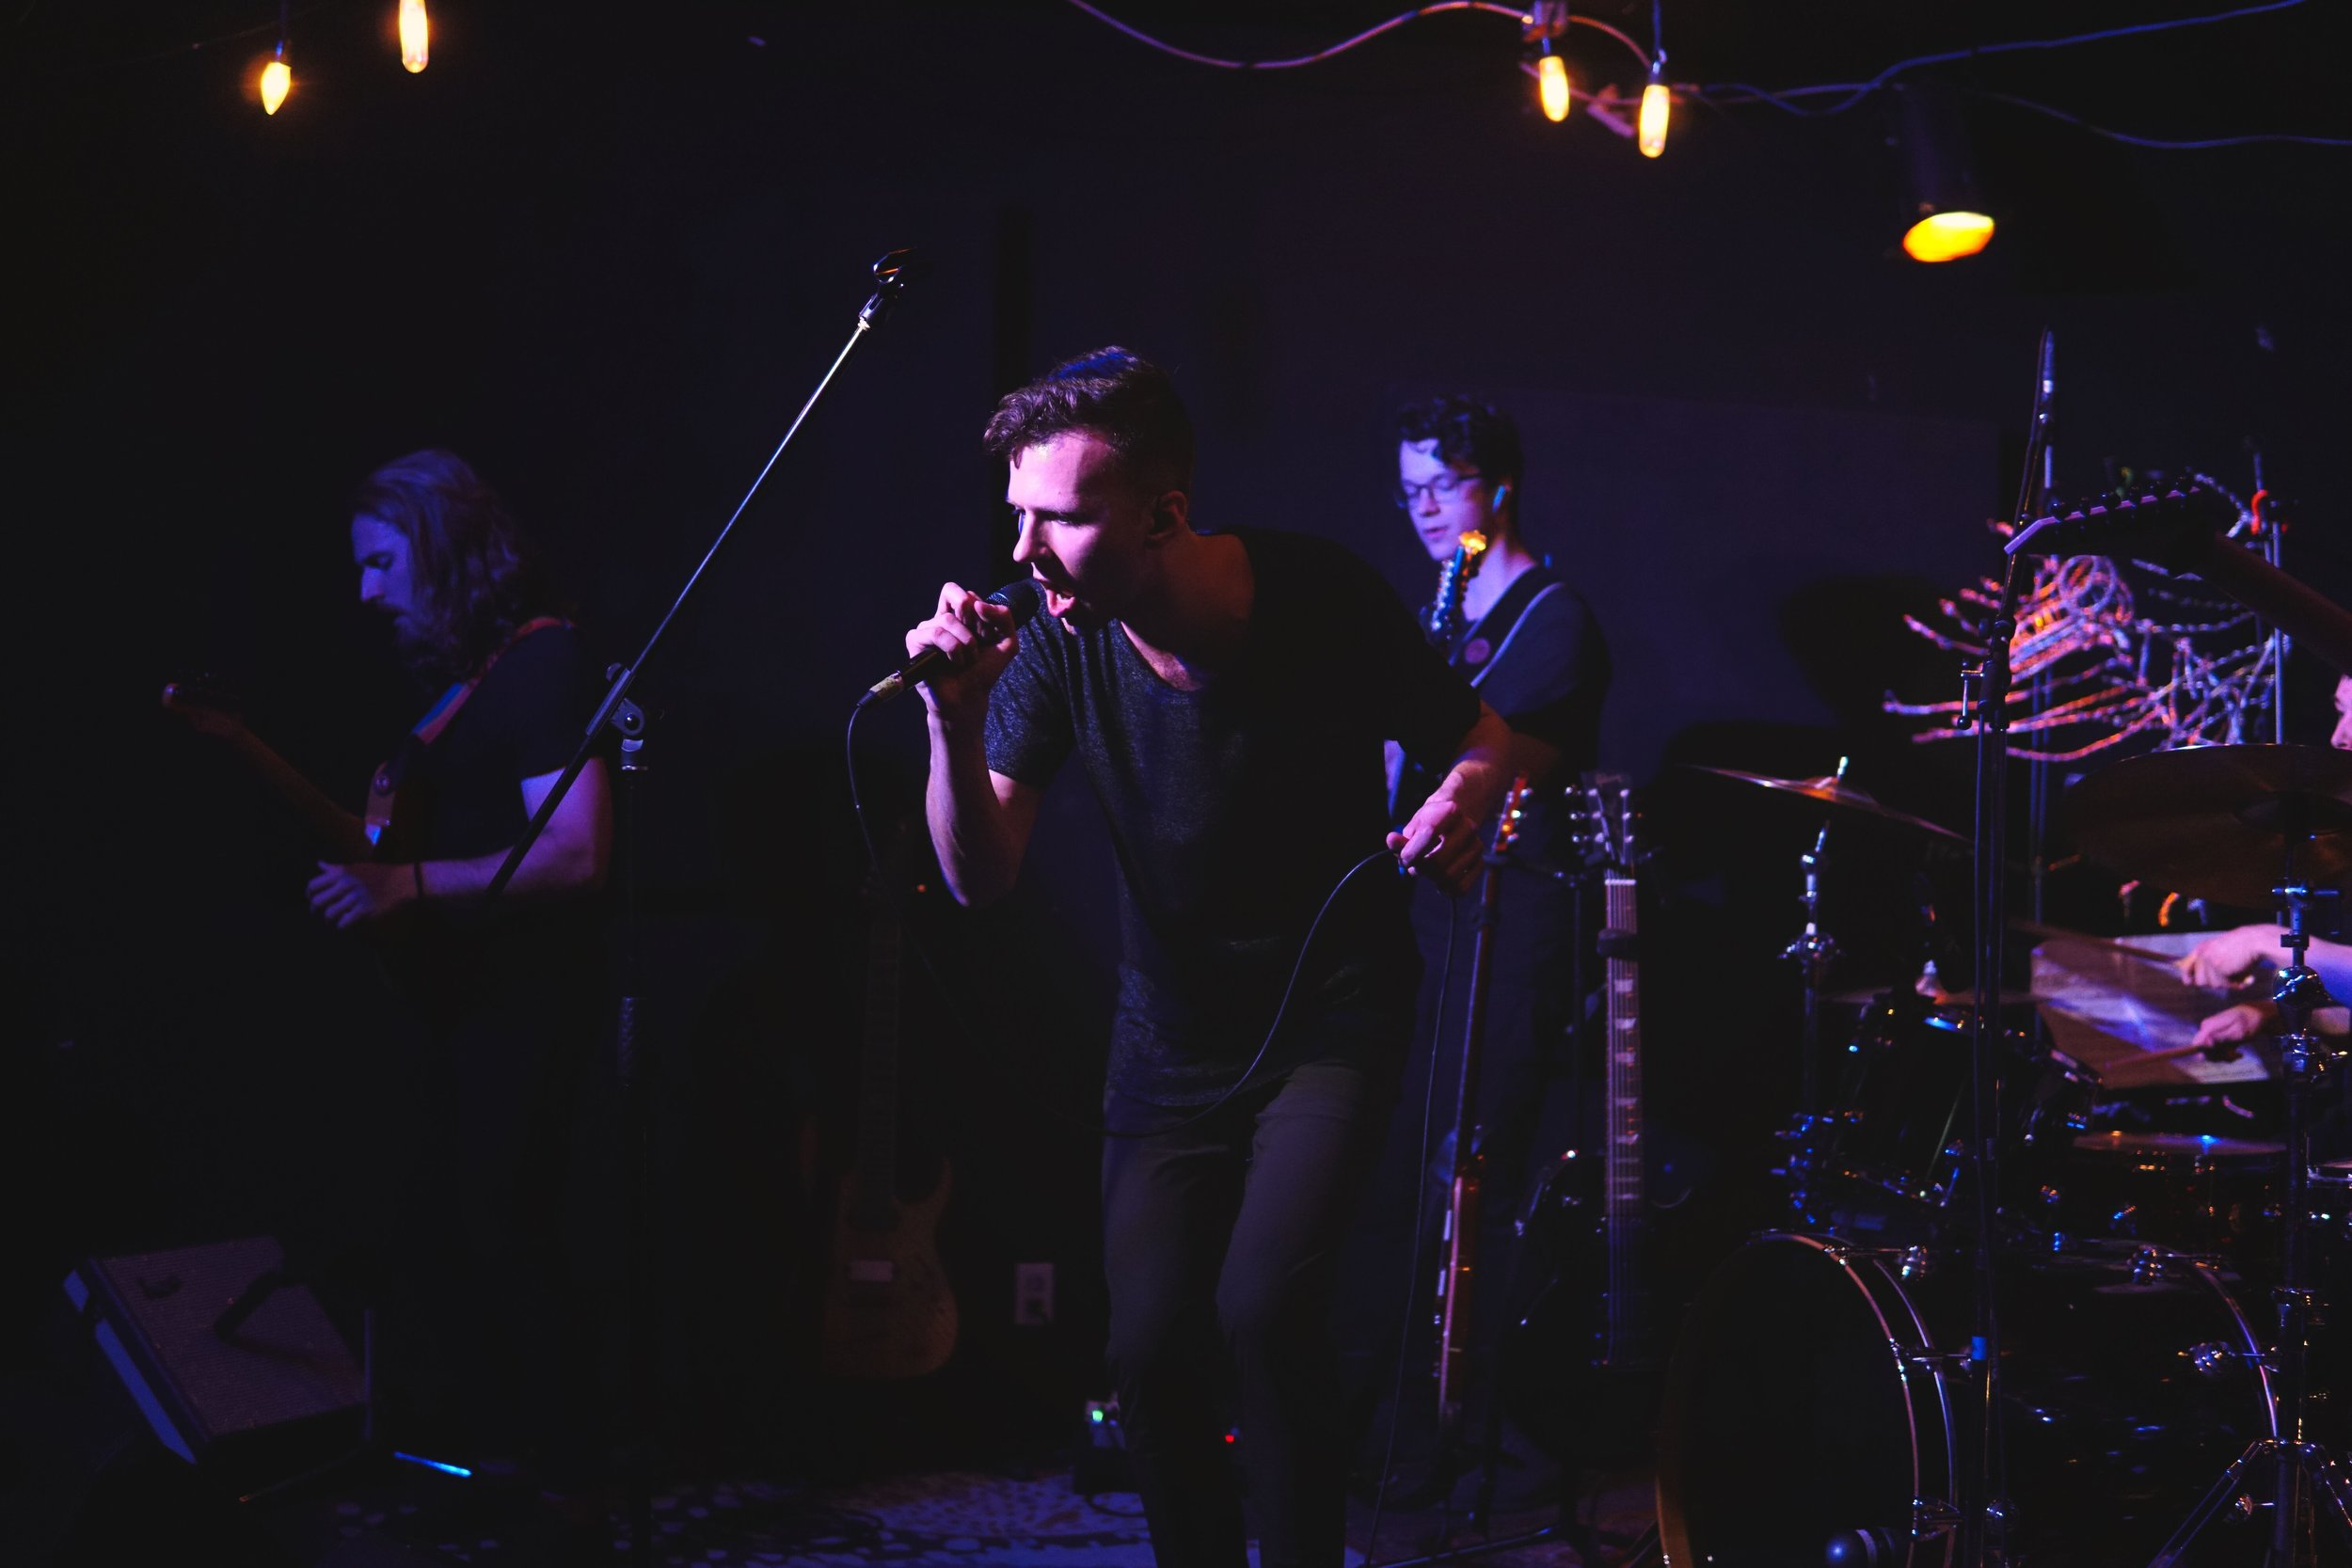 Bloodless Arches CD Release show, pictures and video captured by Bailey Sutton Videography